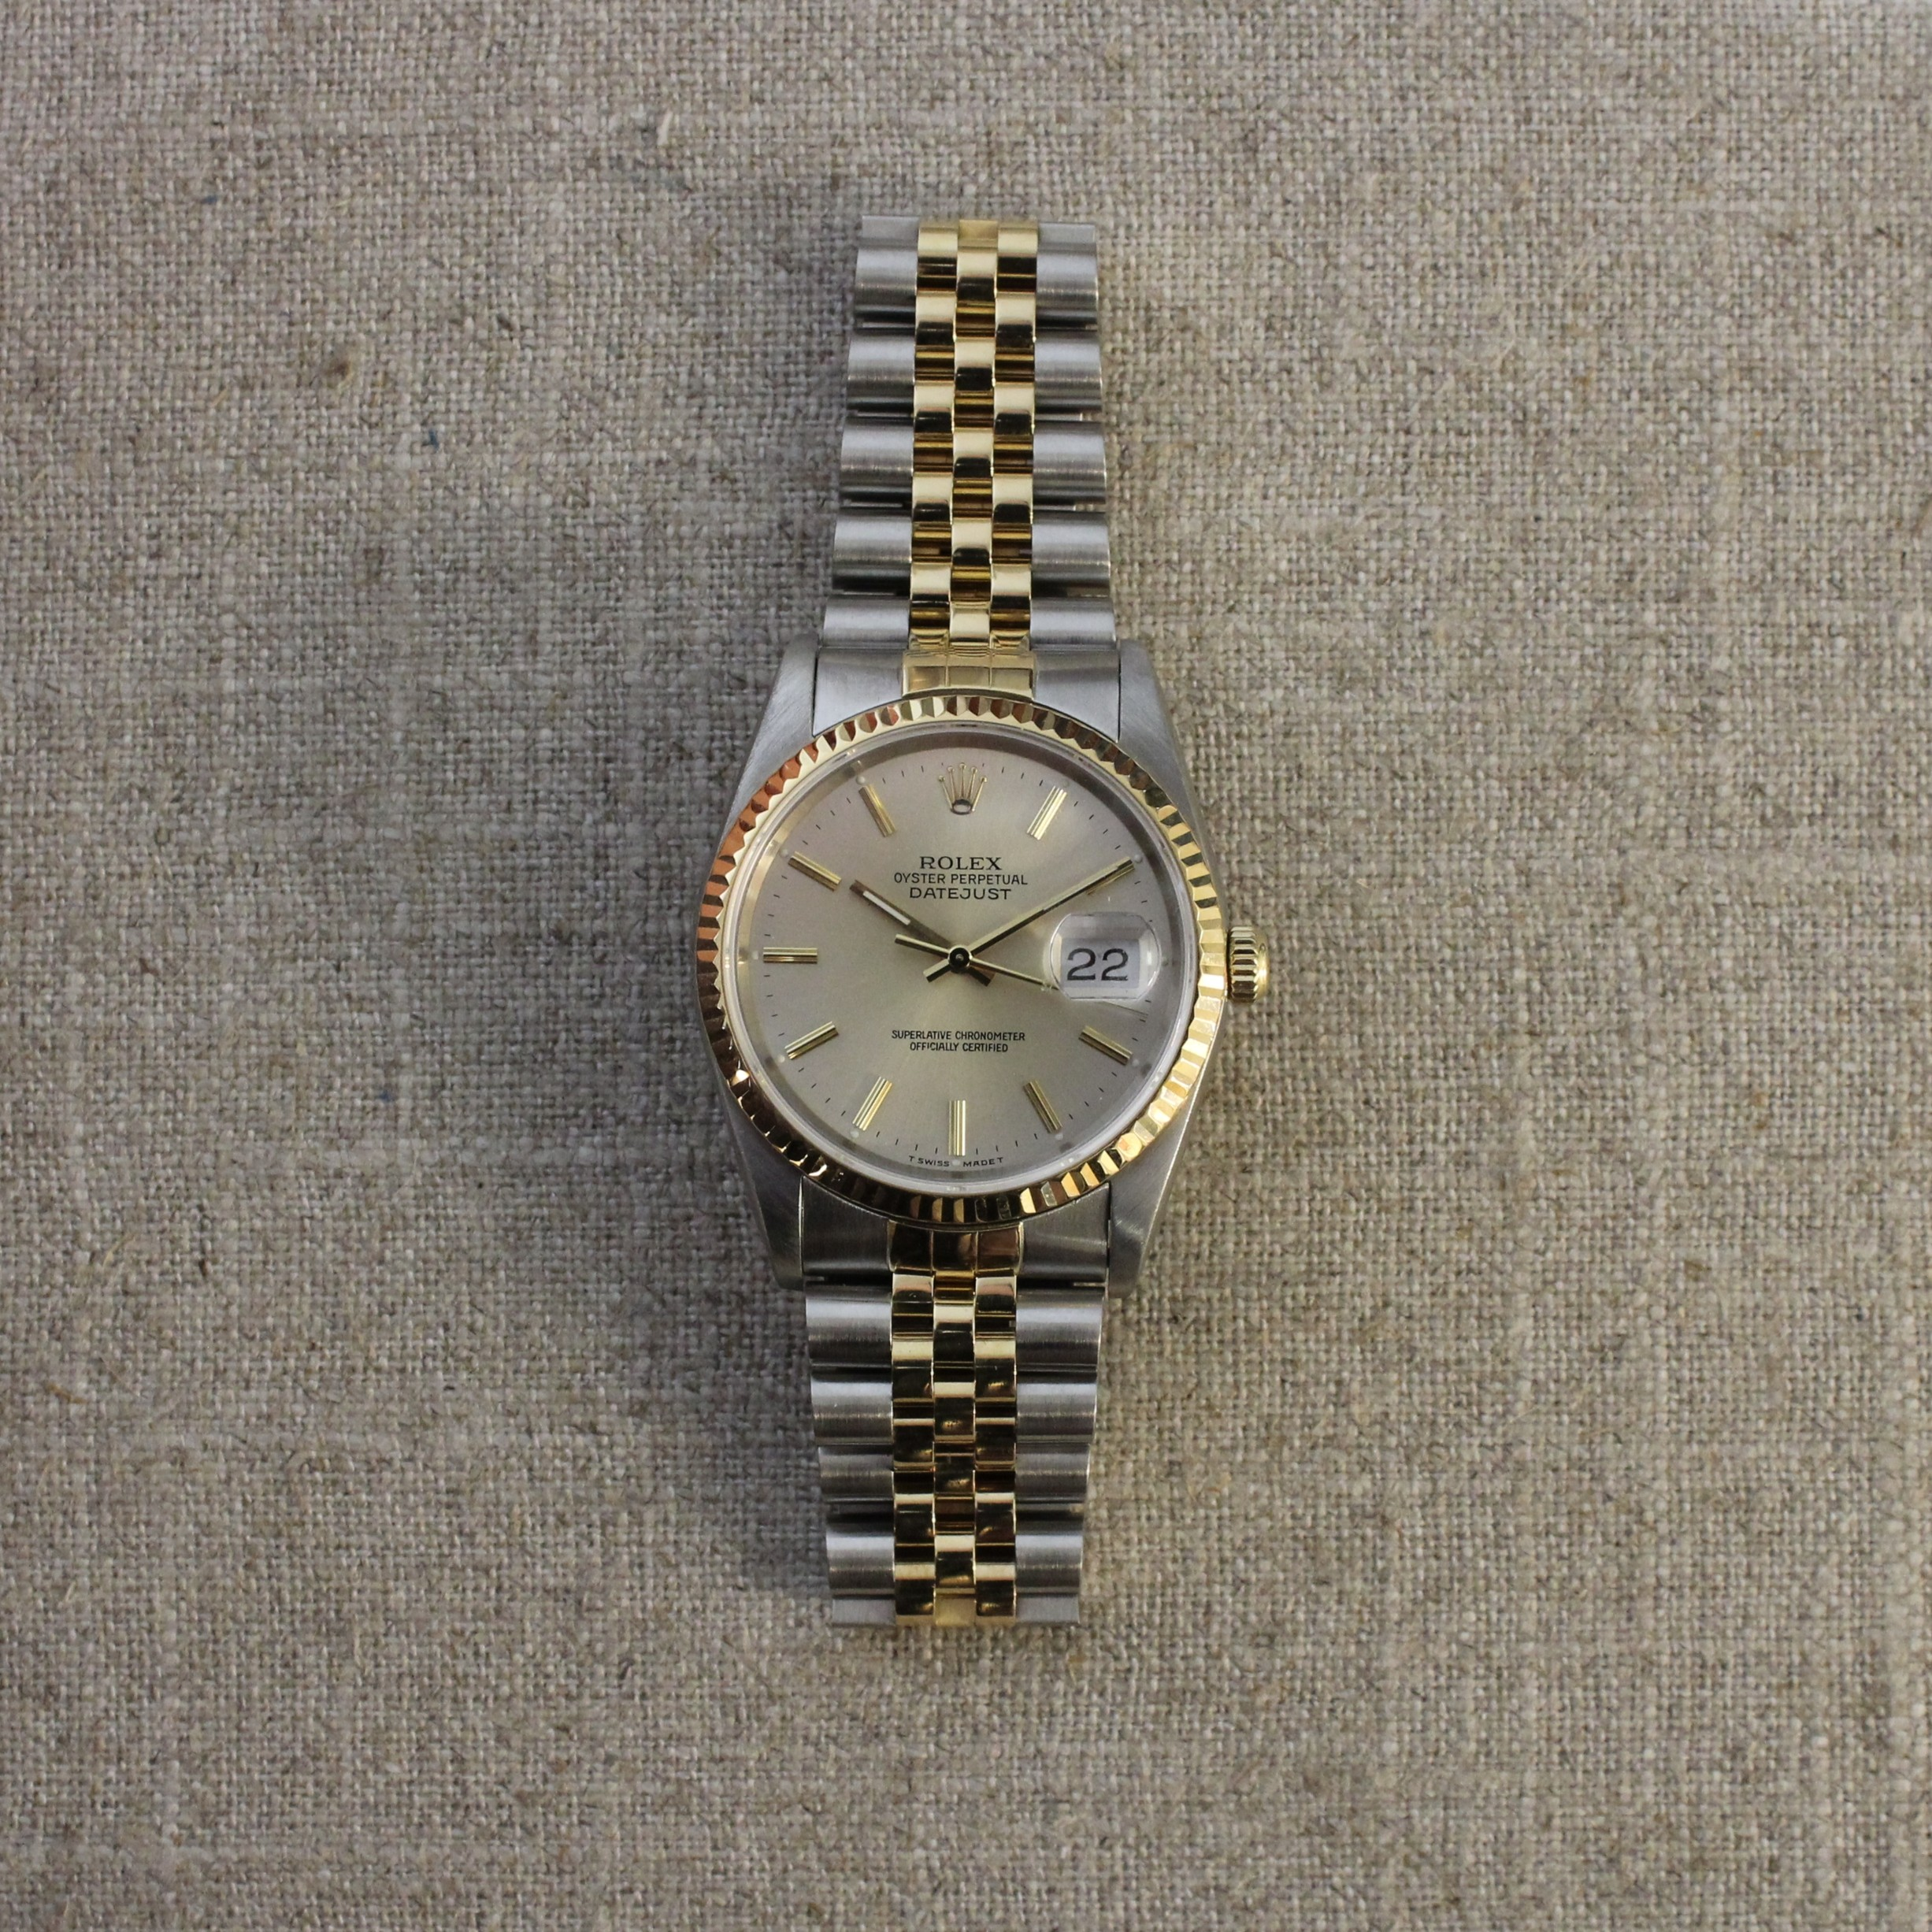 CIRCA 1990'S ROLEX DATEJUST 36MM STAINLESS STEEL AND 18K YELLOW GOLD